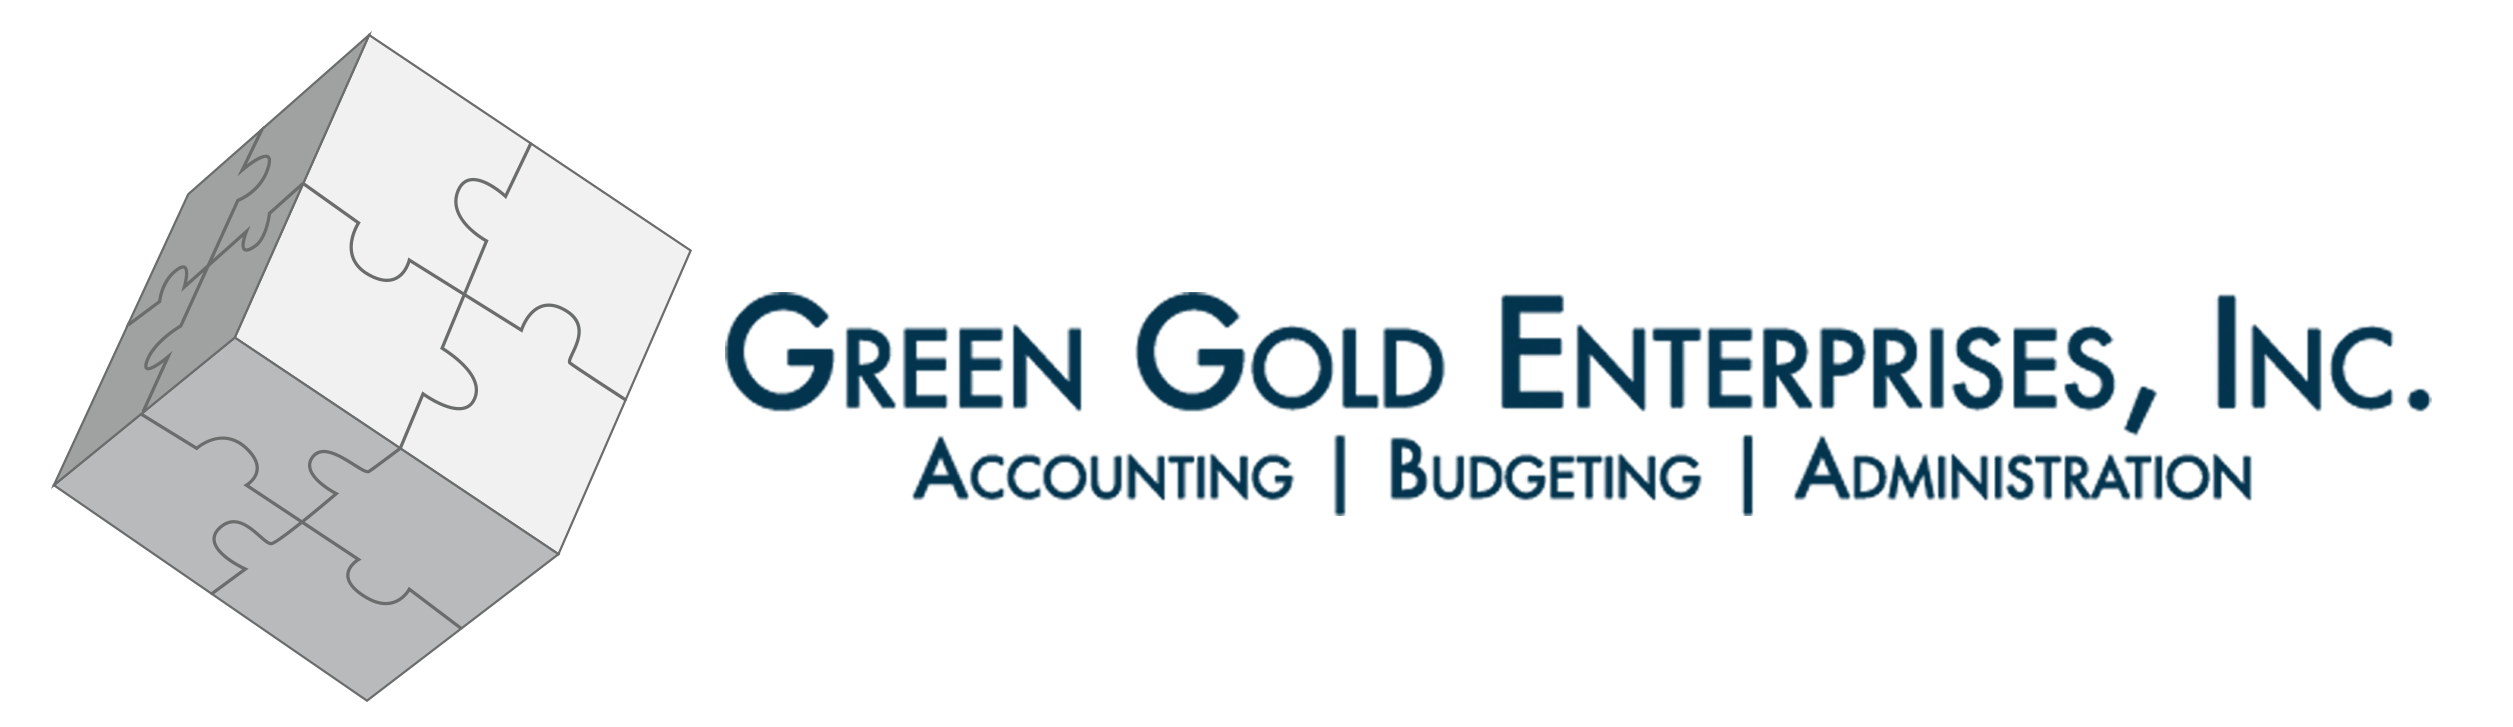 Green Gold Enterprises | Edgar Naranjo